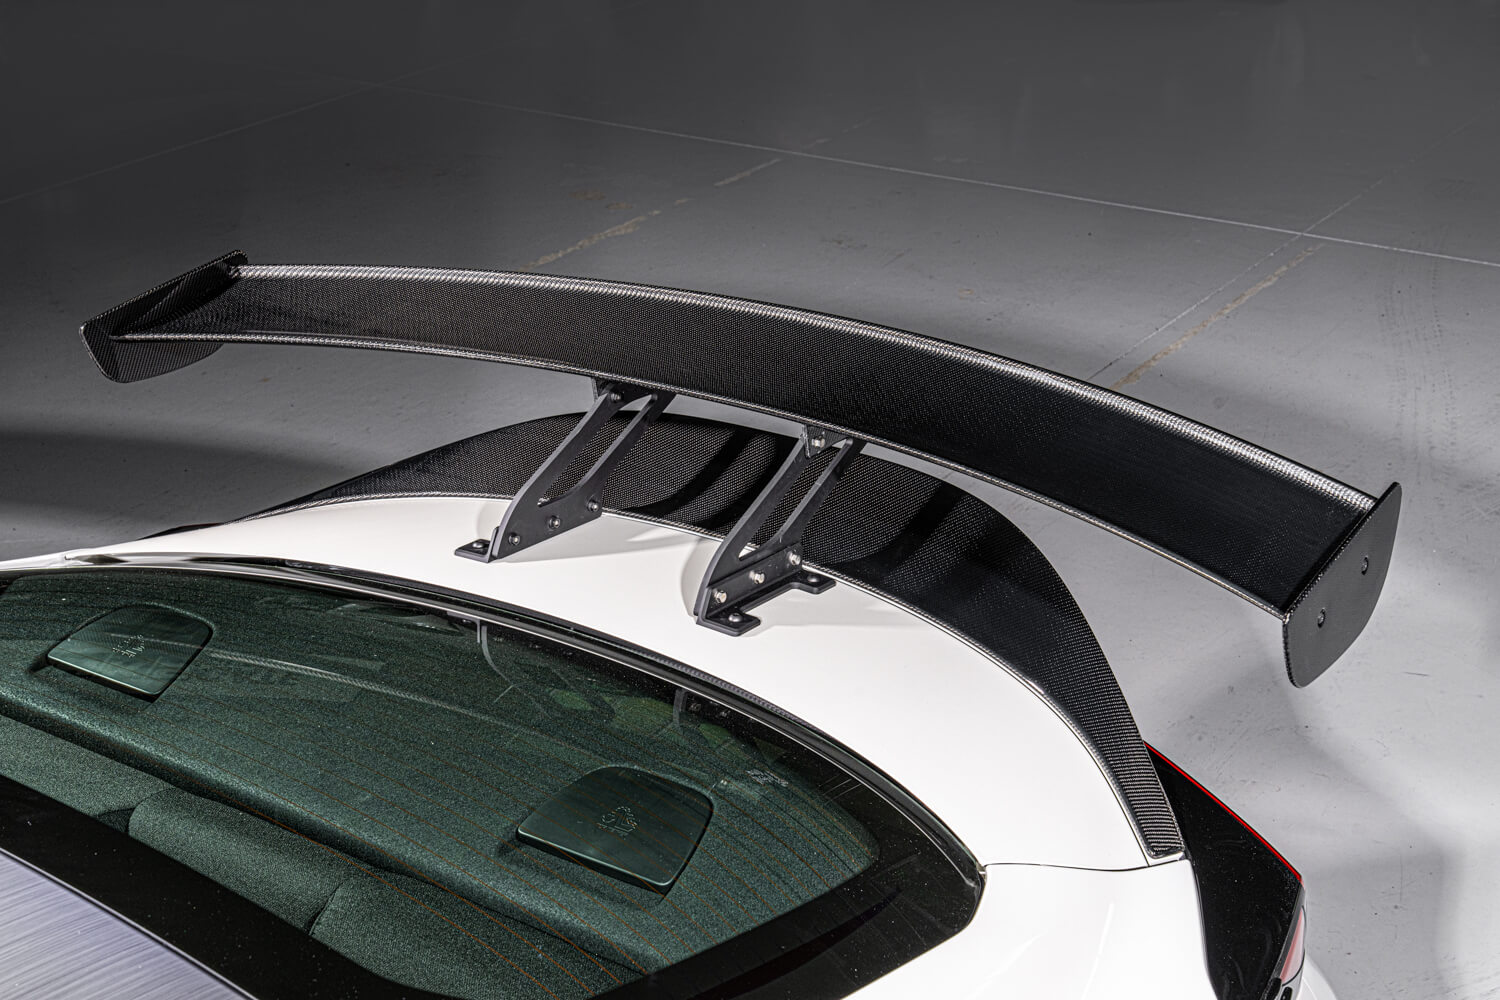 Toyota GR86 HKS Concept GT wing and Ducktail.jpg